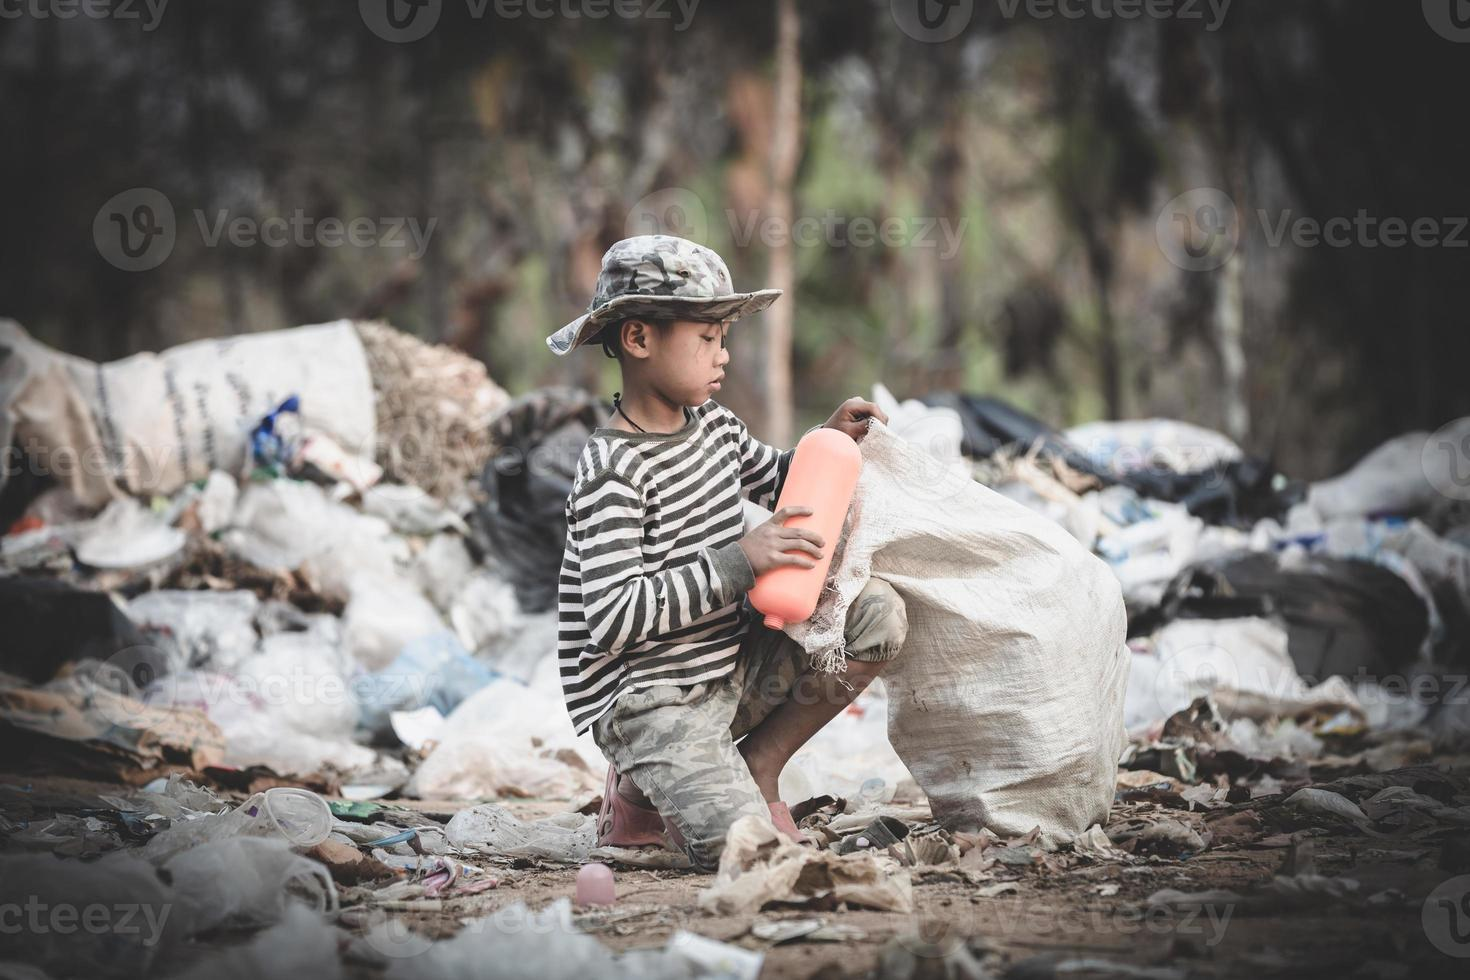 Poor boy collecting garbage in his sack to earn his livelihood. photo